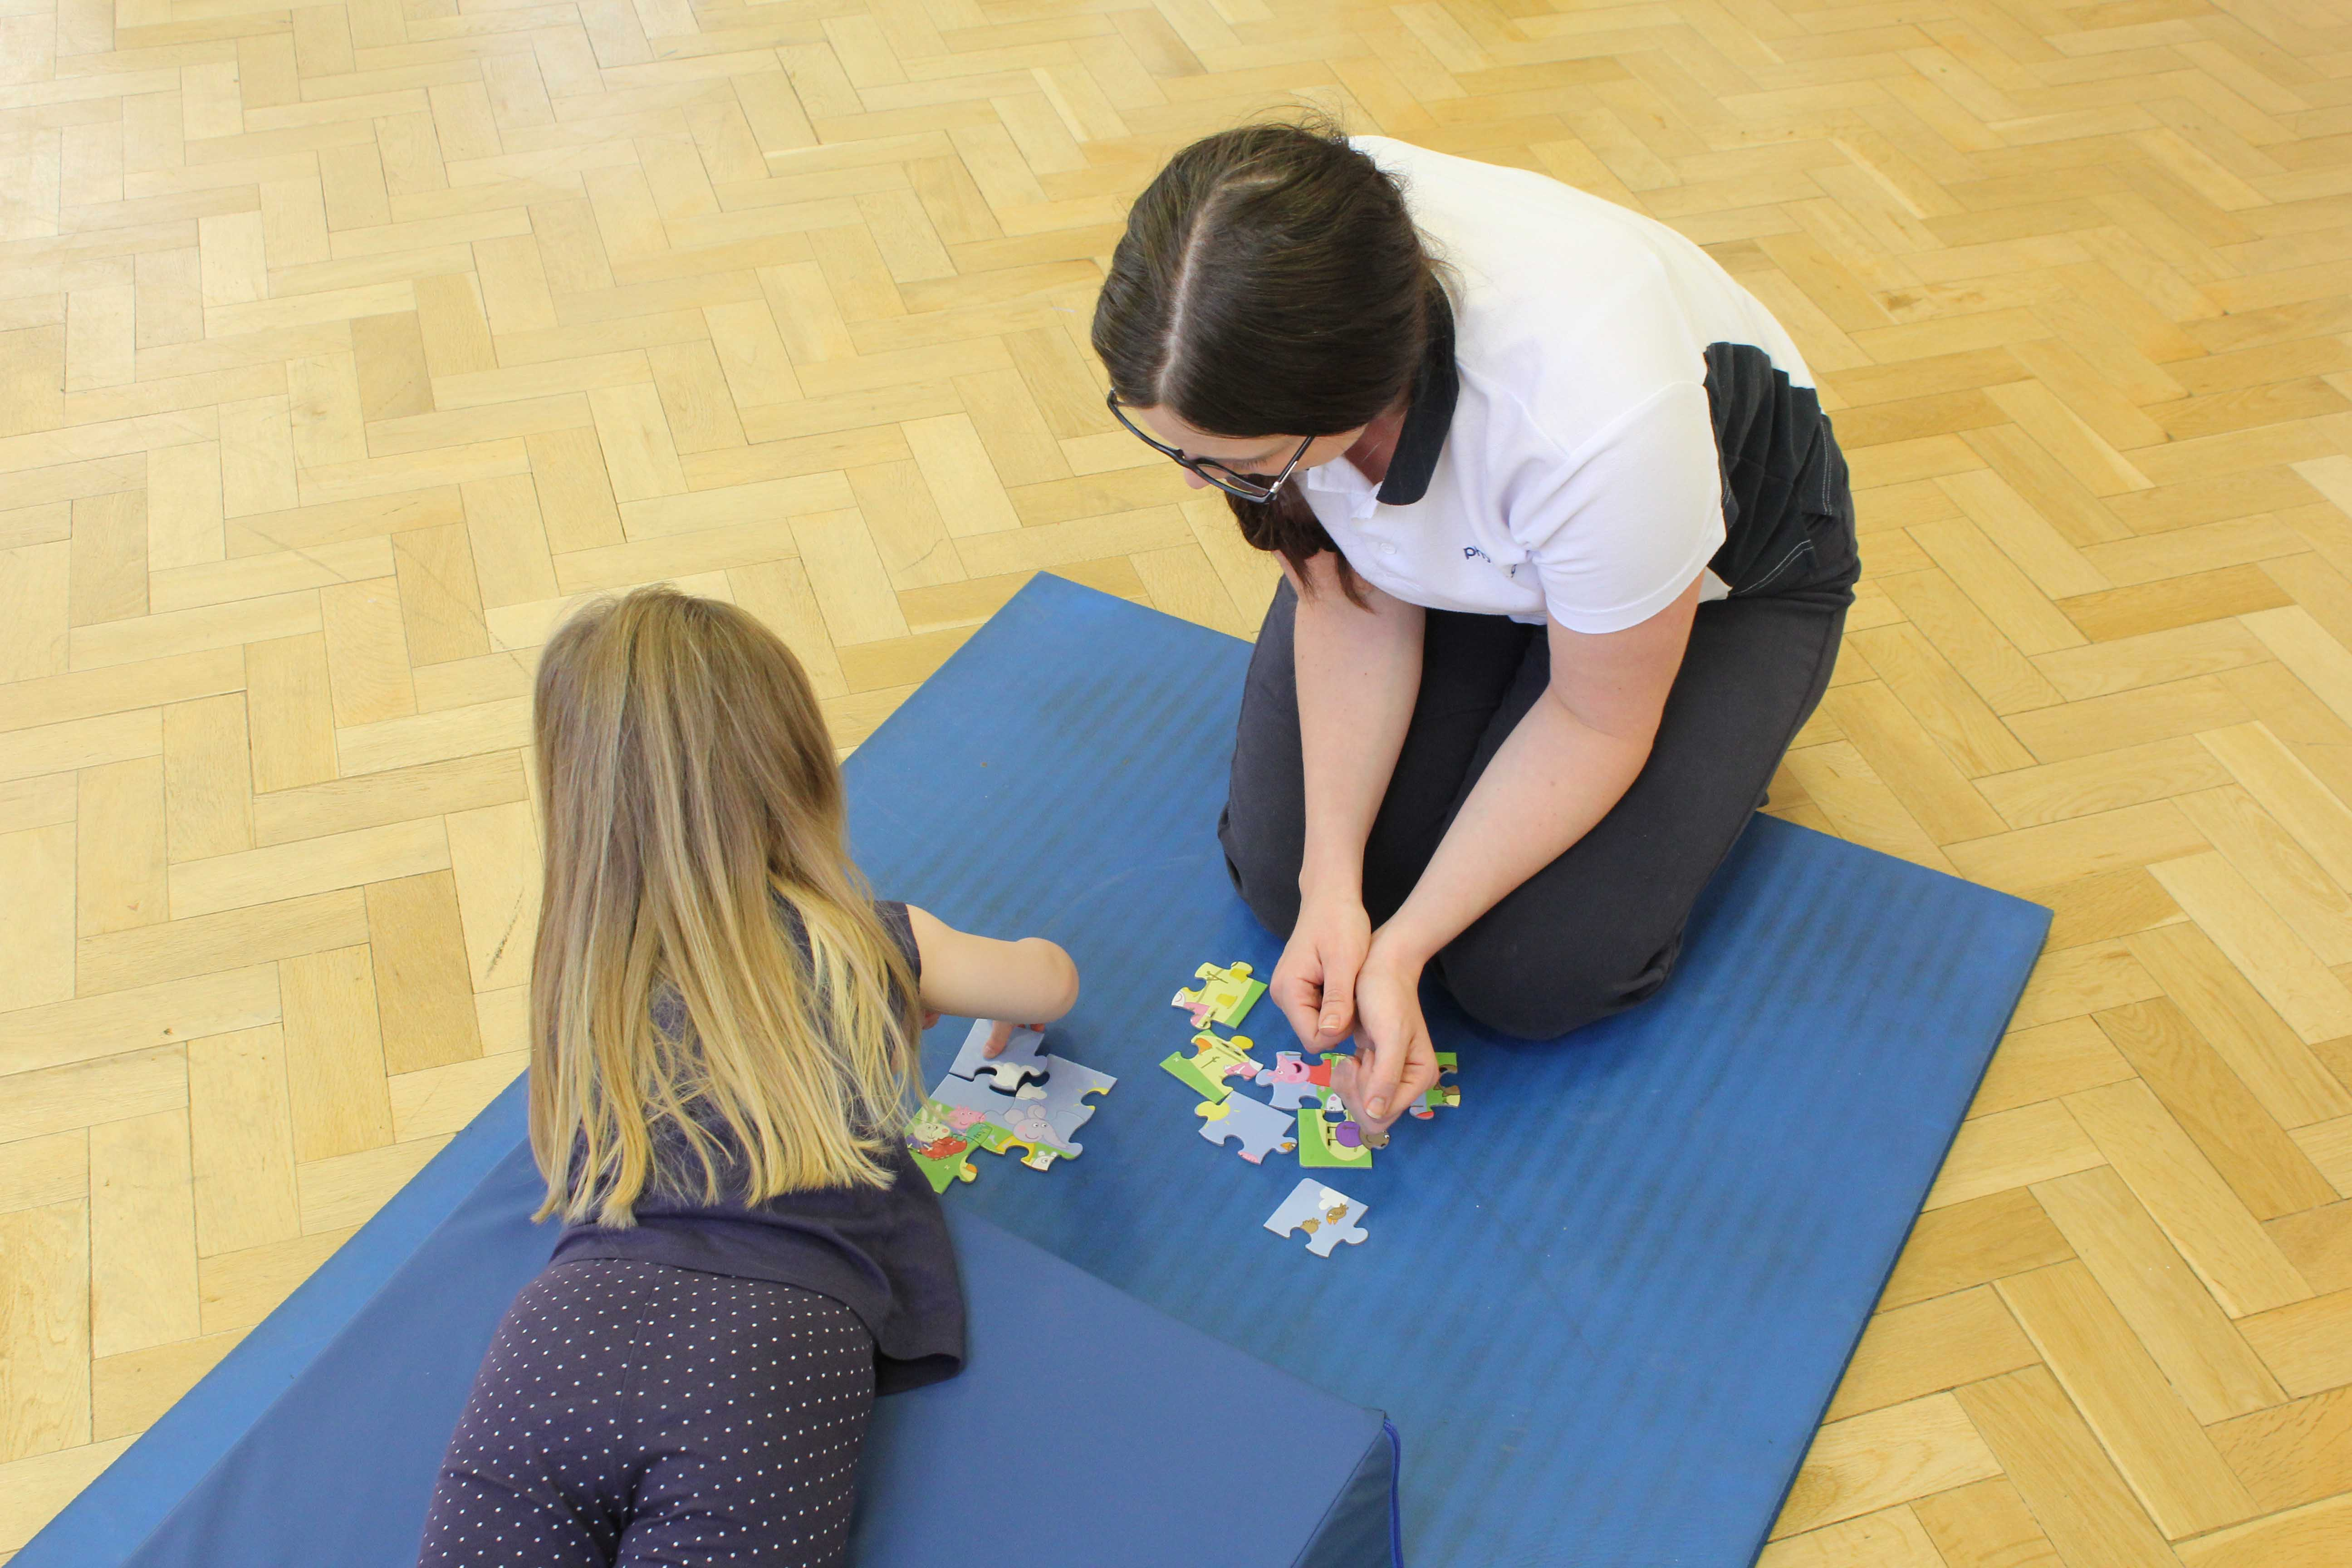 Treatment session can help evelop your childs gross and fine motor skills.